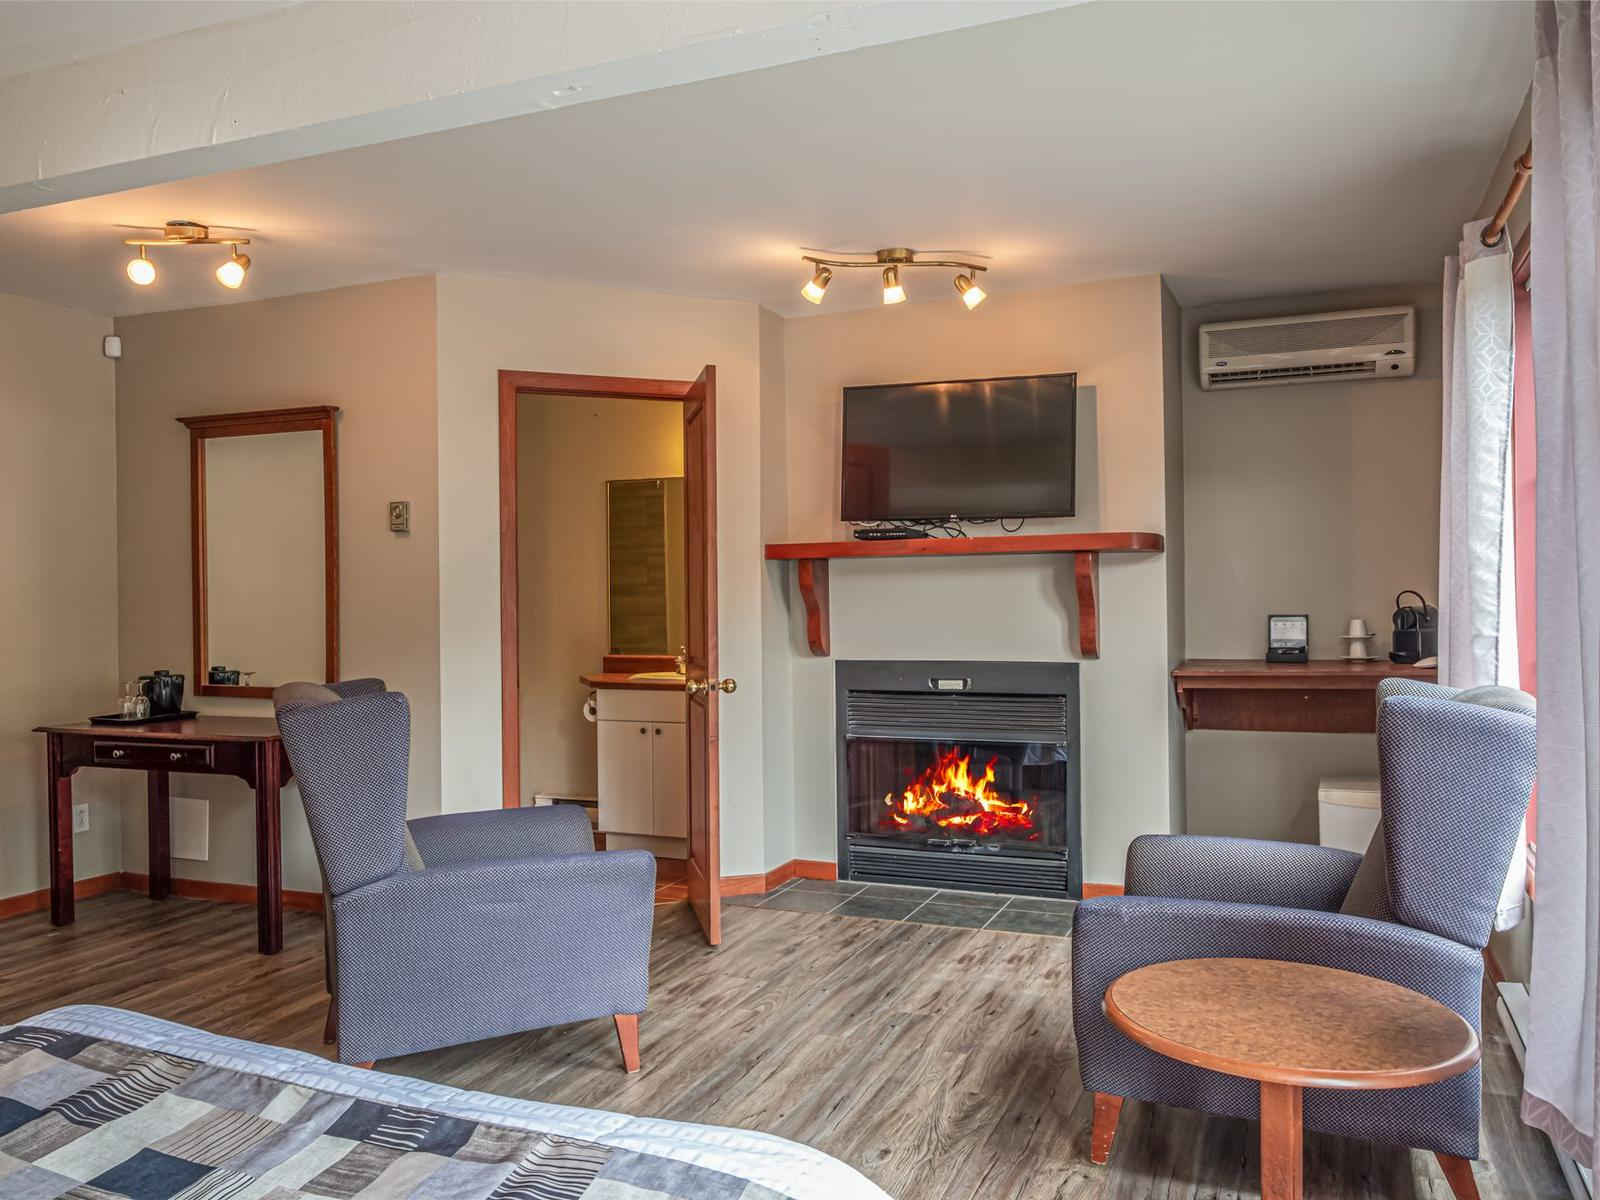 Two chairs and a fireplace in a hotel room